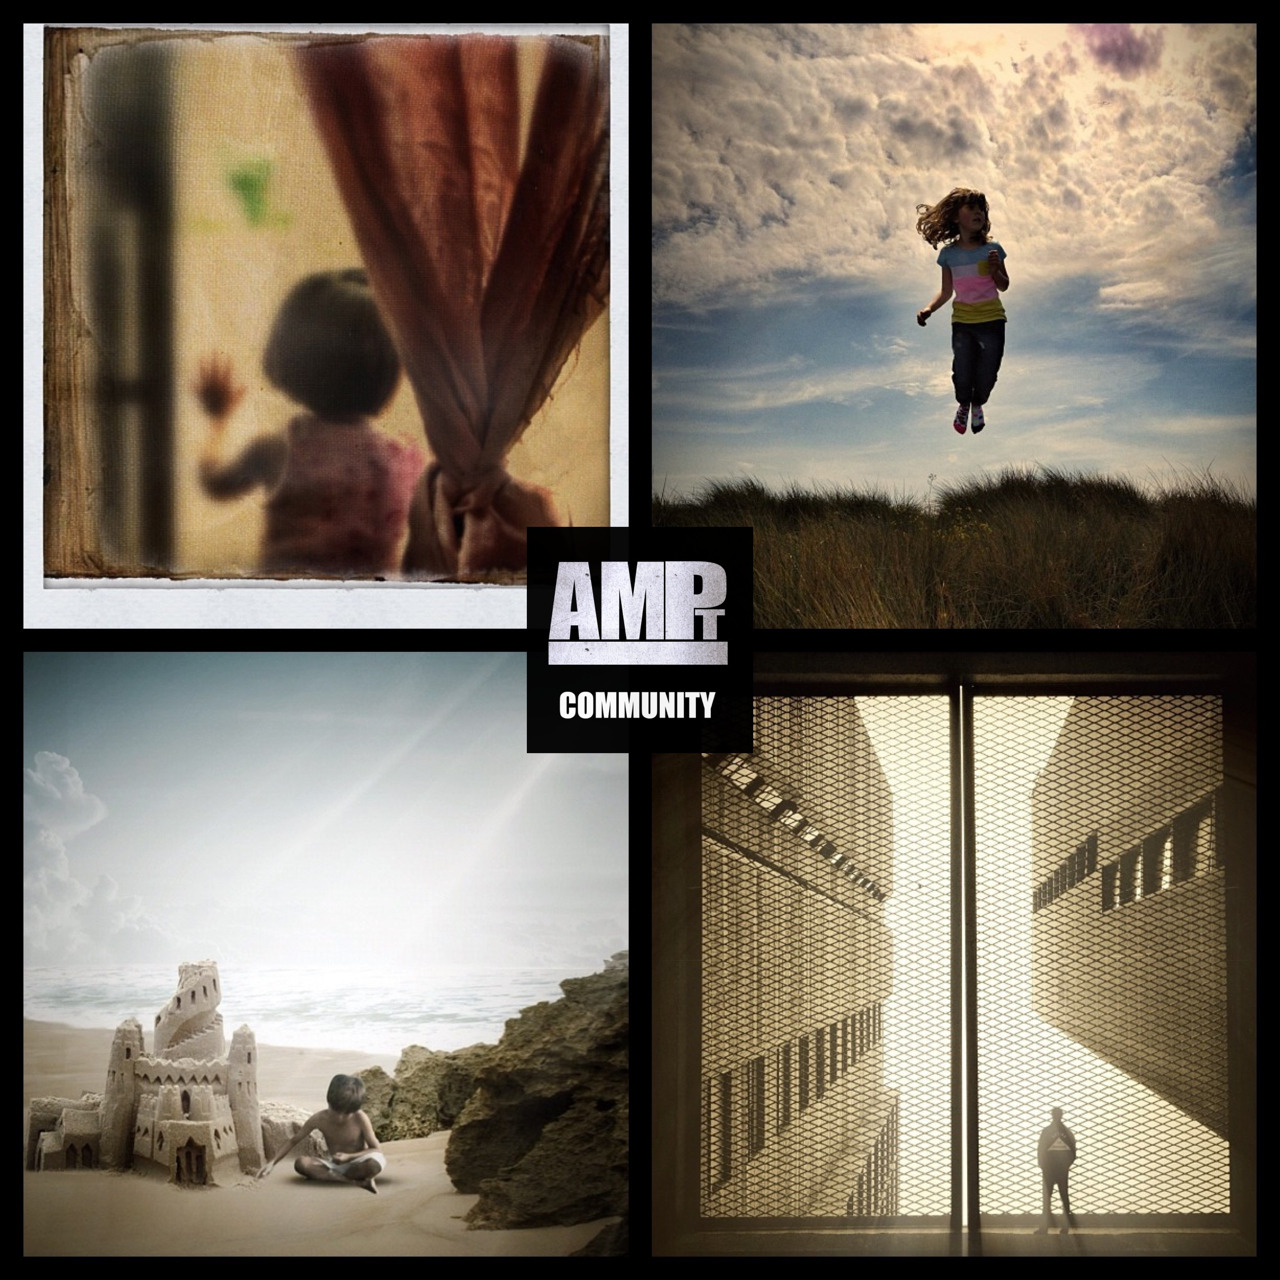 AMPt Community Recommendations   Here are 4 IGers we would like to introduce you to. Stop by their feeds,say hello and check out their editing process for the images above!   Clockwise from top left:    @aniexe  Shot with procamera Apps used: camera+, snapseed    @cloud_dreamer  Taken with native camera Apps used: VSCO, snapseed    @_holo  Shot with camera+ Apps used: snapseed, superimposer    @dastin777  Shot with native camera  Apps used: Artstudio    Thank you for sharing with #AMPt_Community! Interested in having your work seen and considered for a spotlight? Tag to #Ampt_Community and include apps used and your editing process in the comment.    TIP: Listing the apps used to shoot/edit is a requirement for all nominated/featured images. Make your image standout by providing this information!